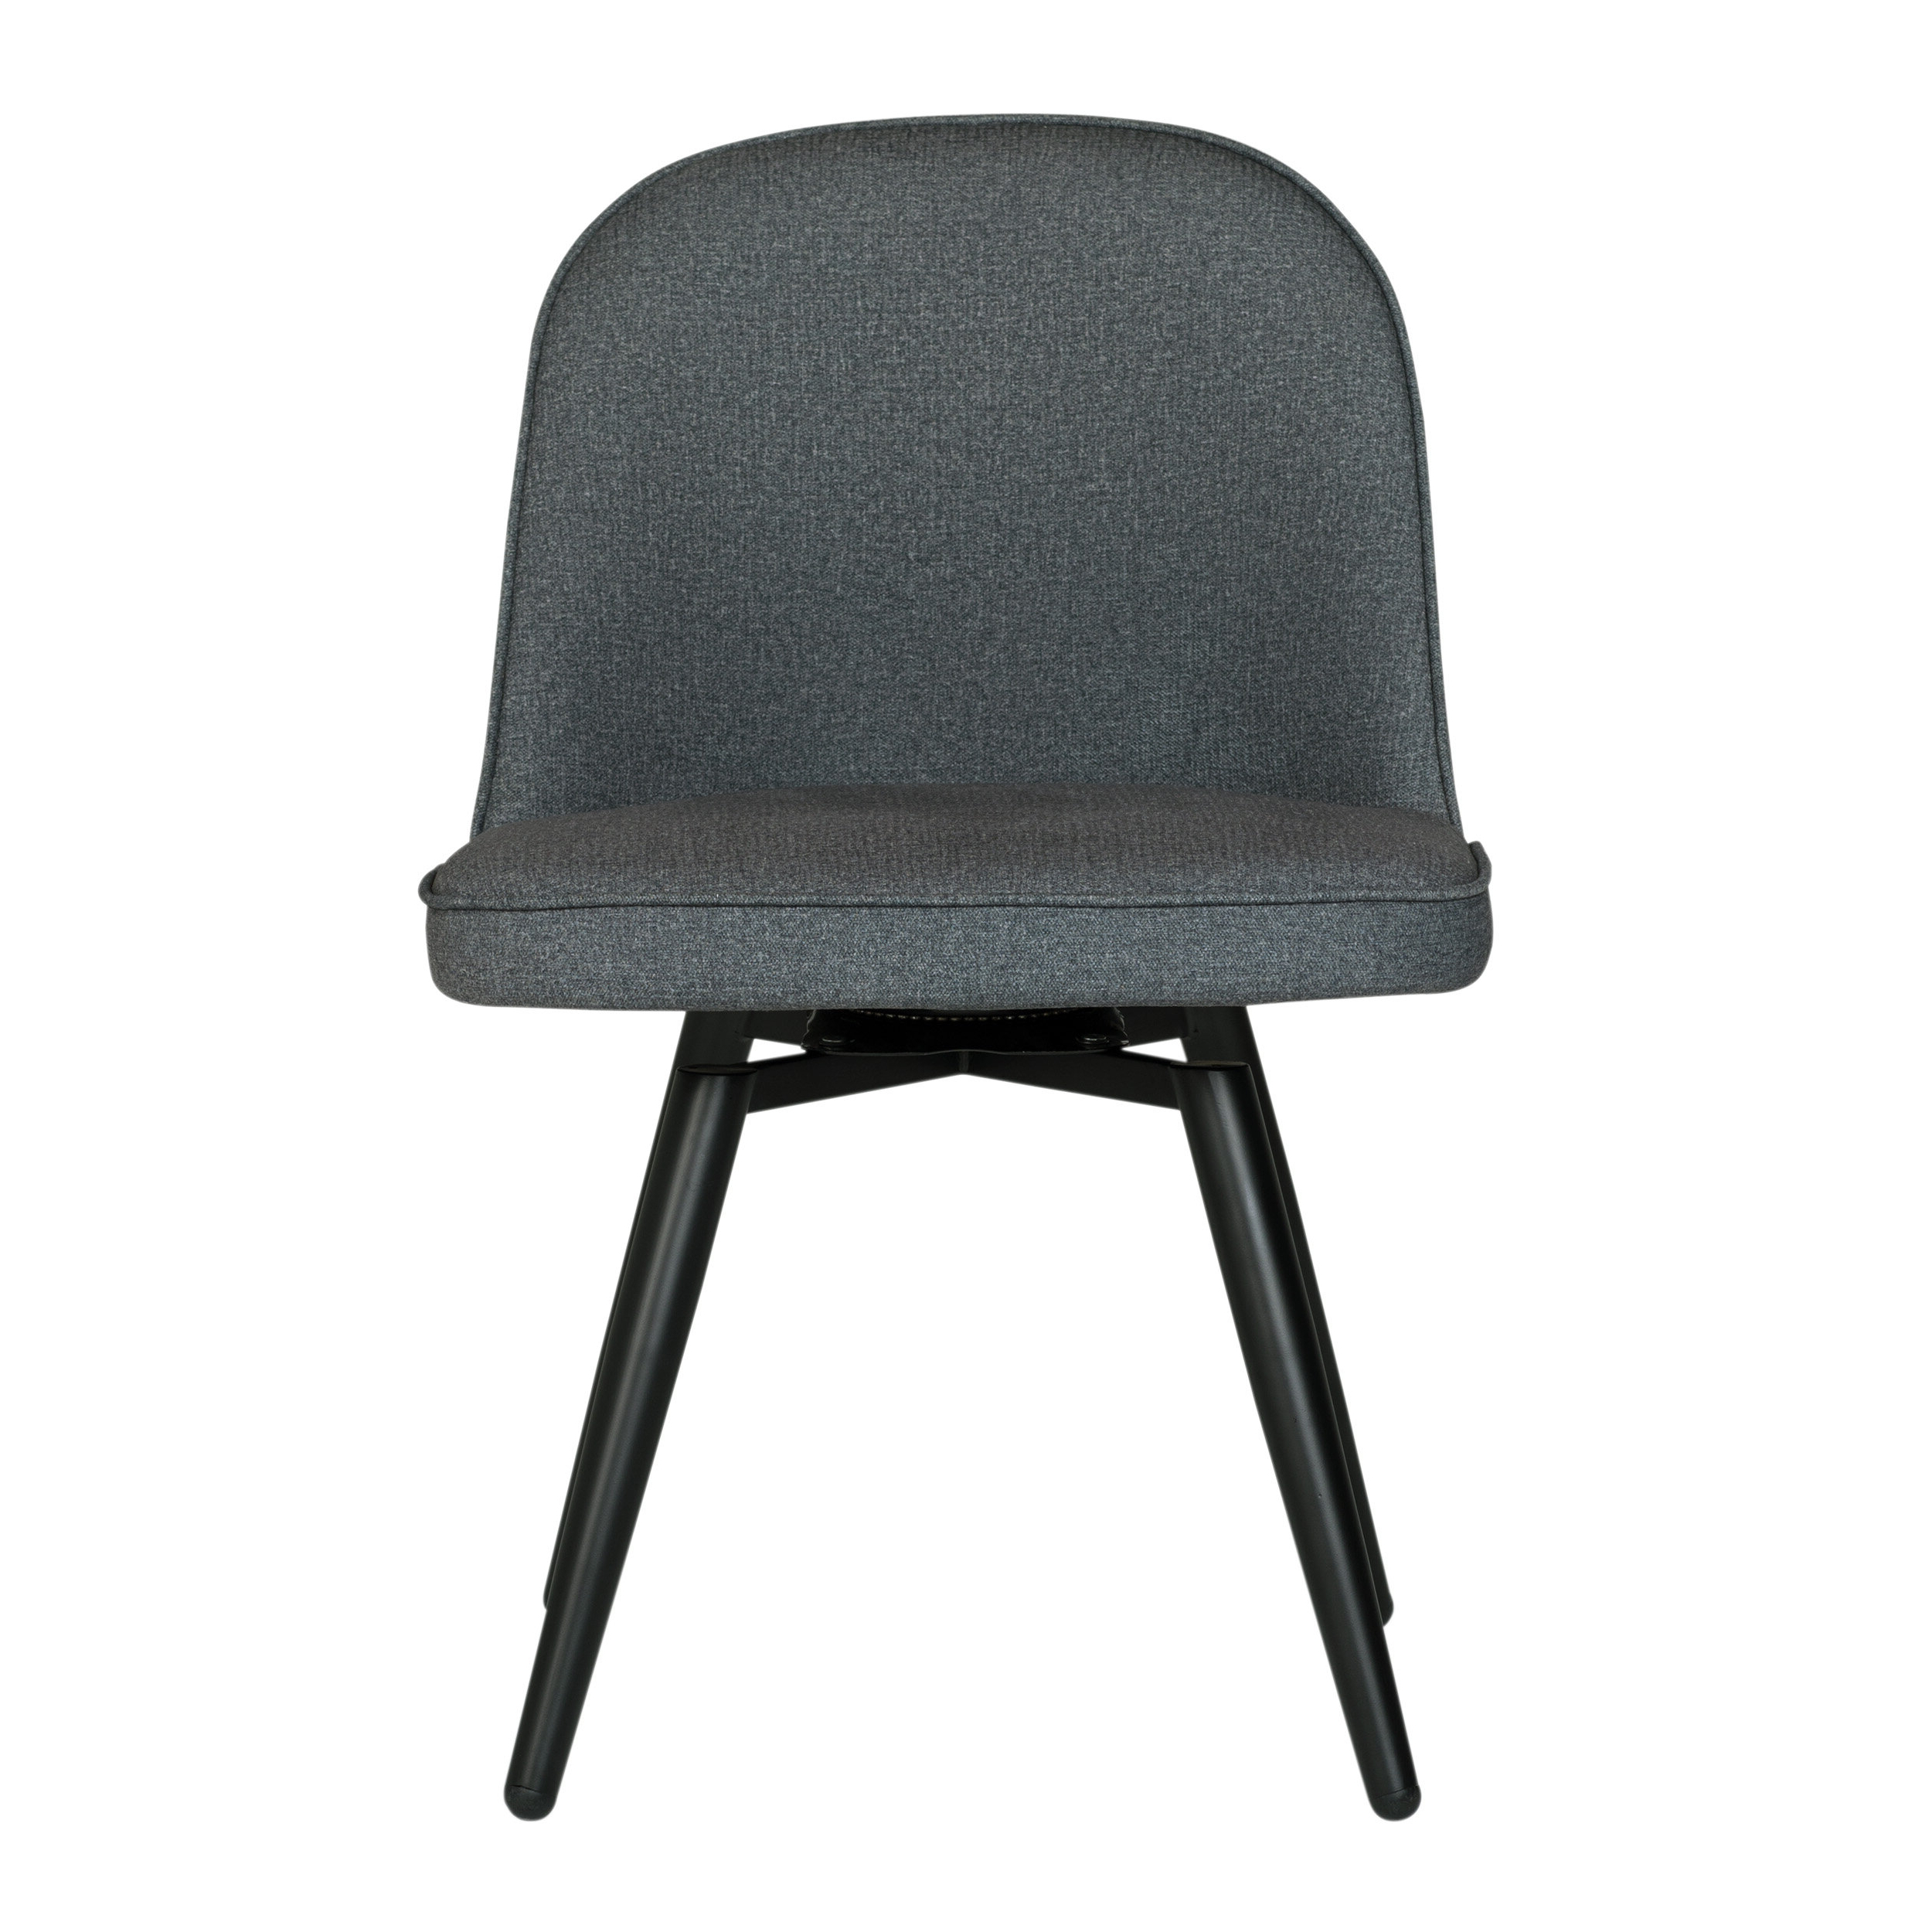 Brister Swivel Side Chairs Pertaining To Latest Dome Swivel Side Chair (View 12 of 20)